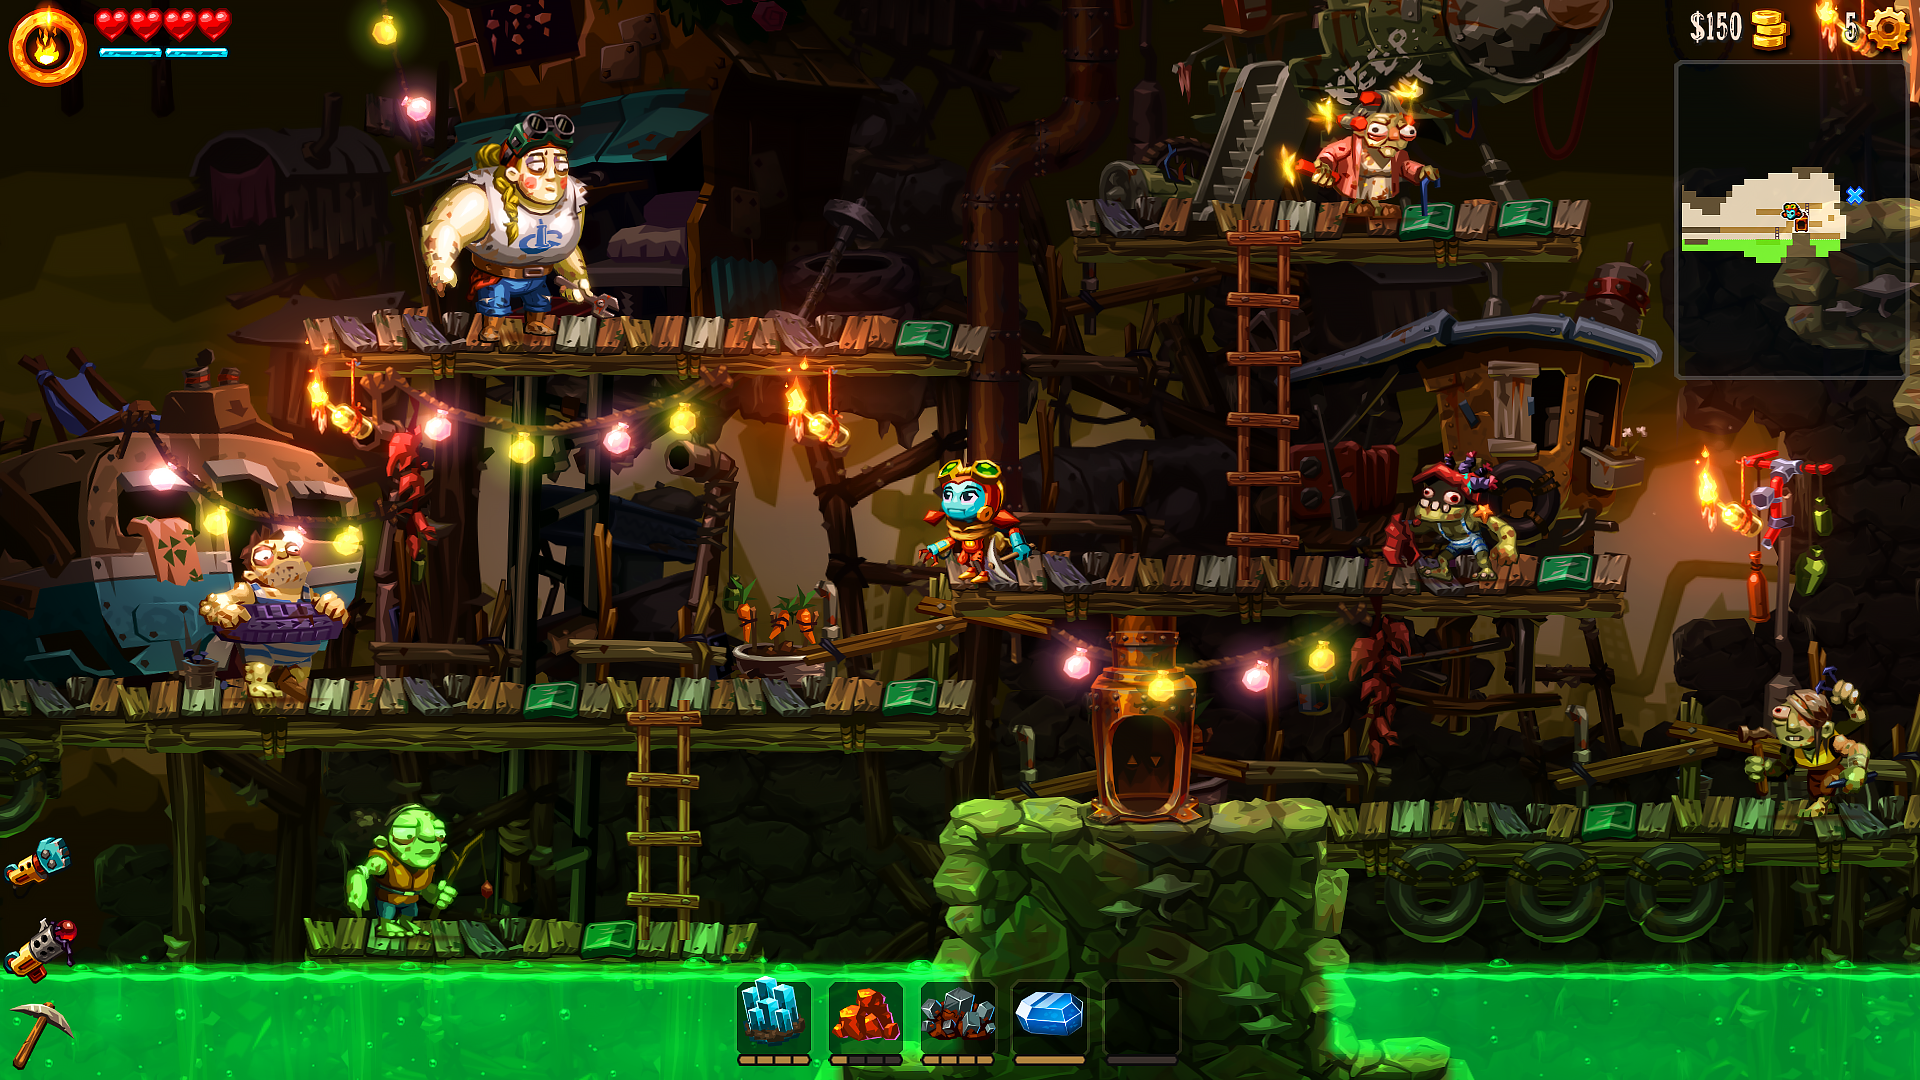 SteamWorld-Dig-2-Screenshot-6.png